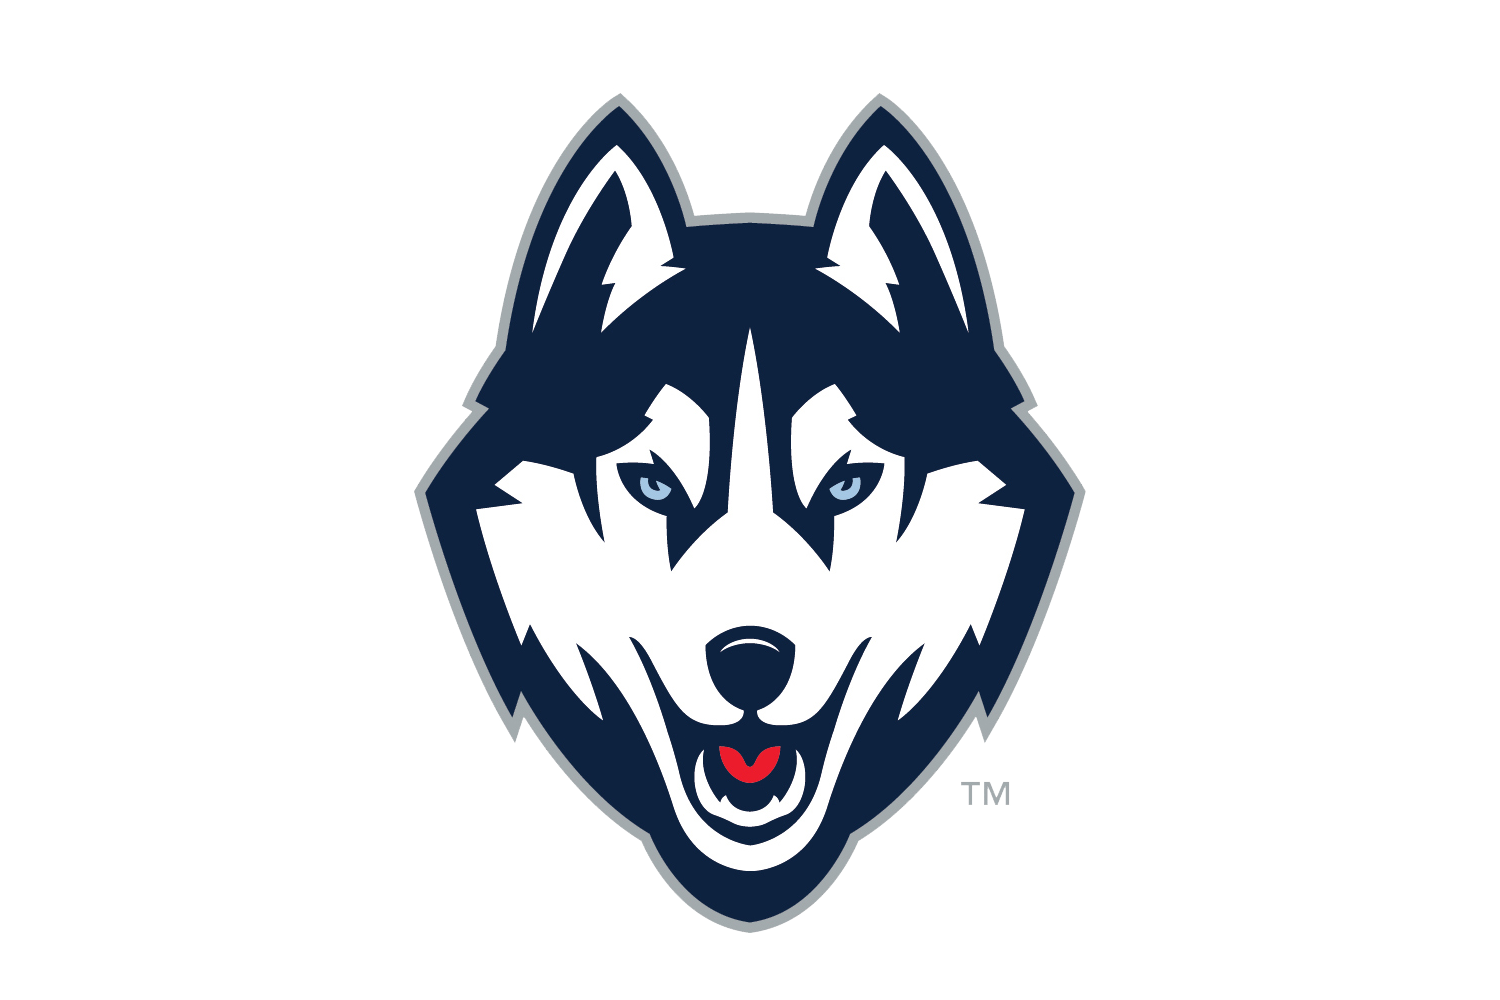 The University of Connecticut (UConn) emblem is known mostly due to the  success of their men s and women s basketball teams 6e1f873026